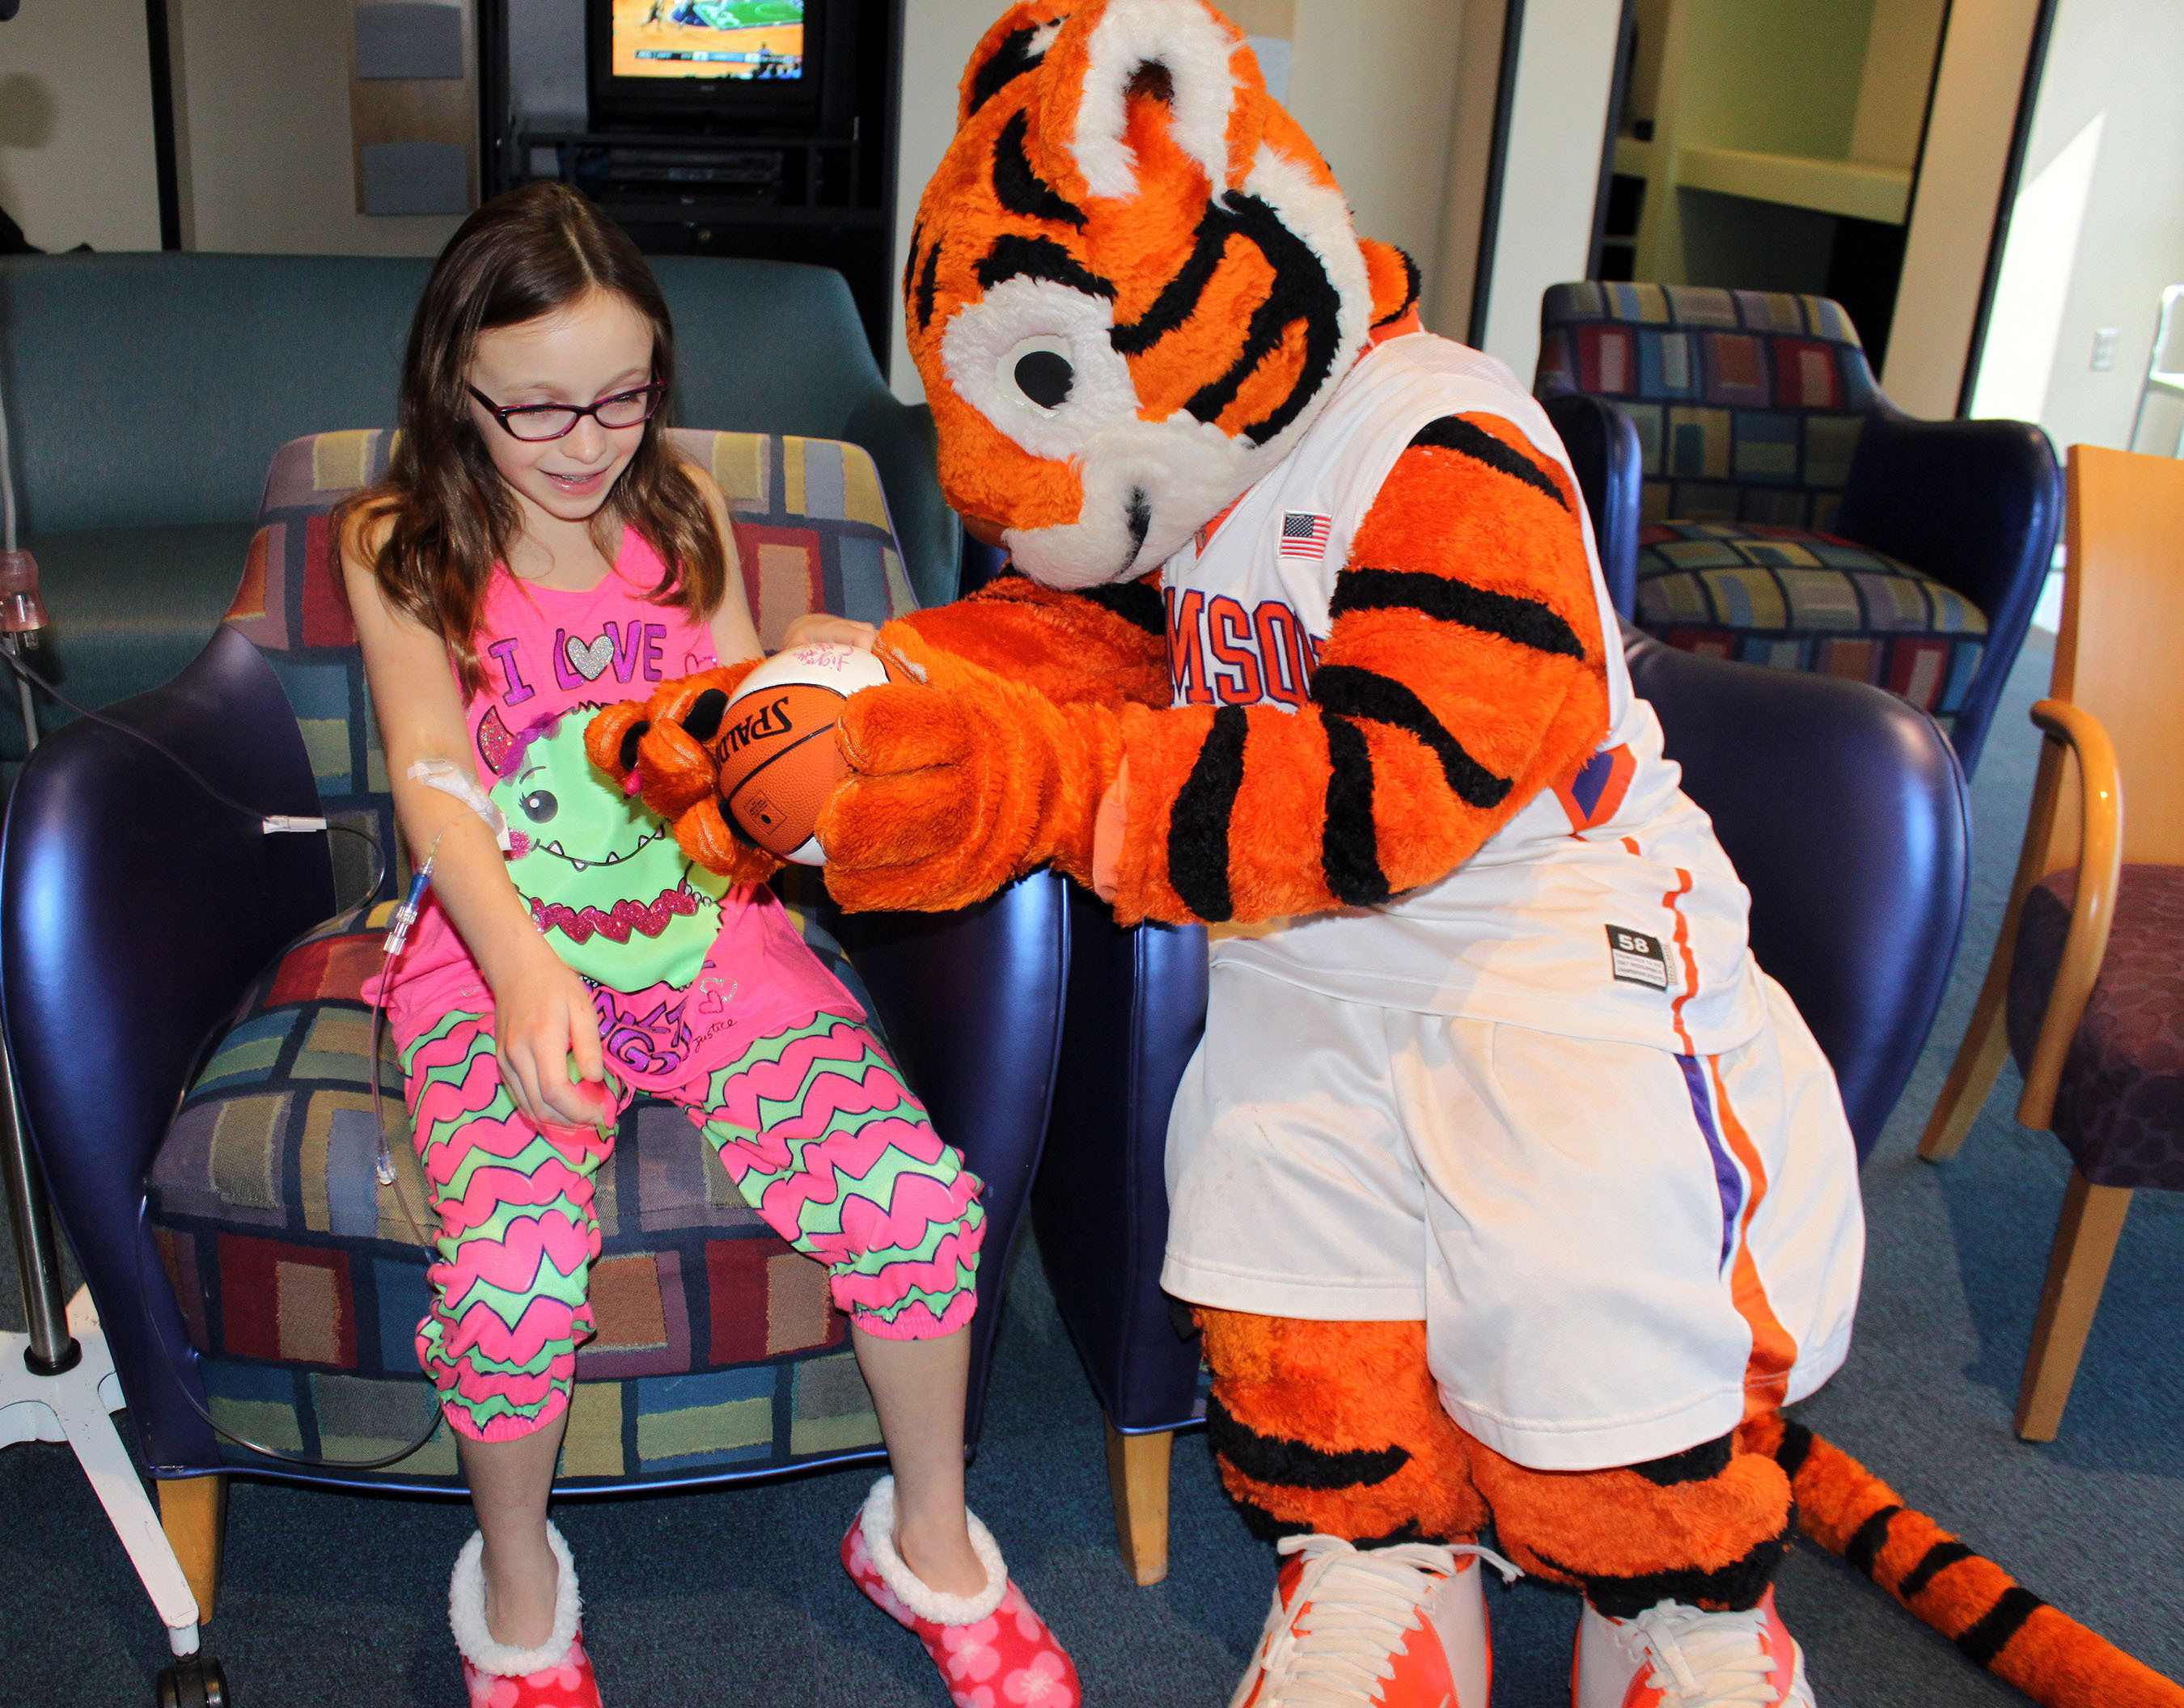 Aspiring actress Emma Miller accepts a signed basketball from the Clemson Tiger Cub. The mascots of the Atlantic Coast Conference paid a visit to Brenner Children's Hospital as part of an outreach initiative for the 2014 ACC Men's Basketball Tournament. (PRNewsFoto/Wake Forest Baptist Medical Center) (PRNewsFoto/WAKE FOREST BAPTIST MEDICAL ...)